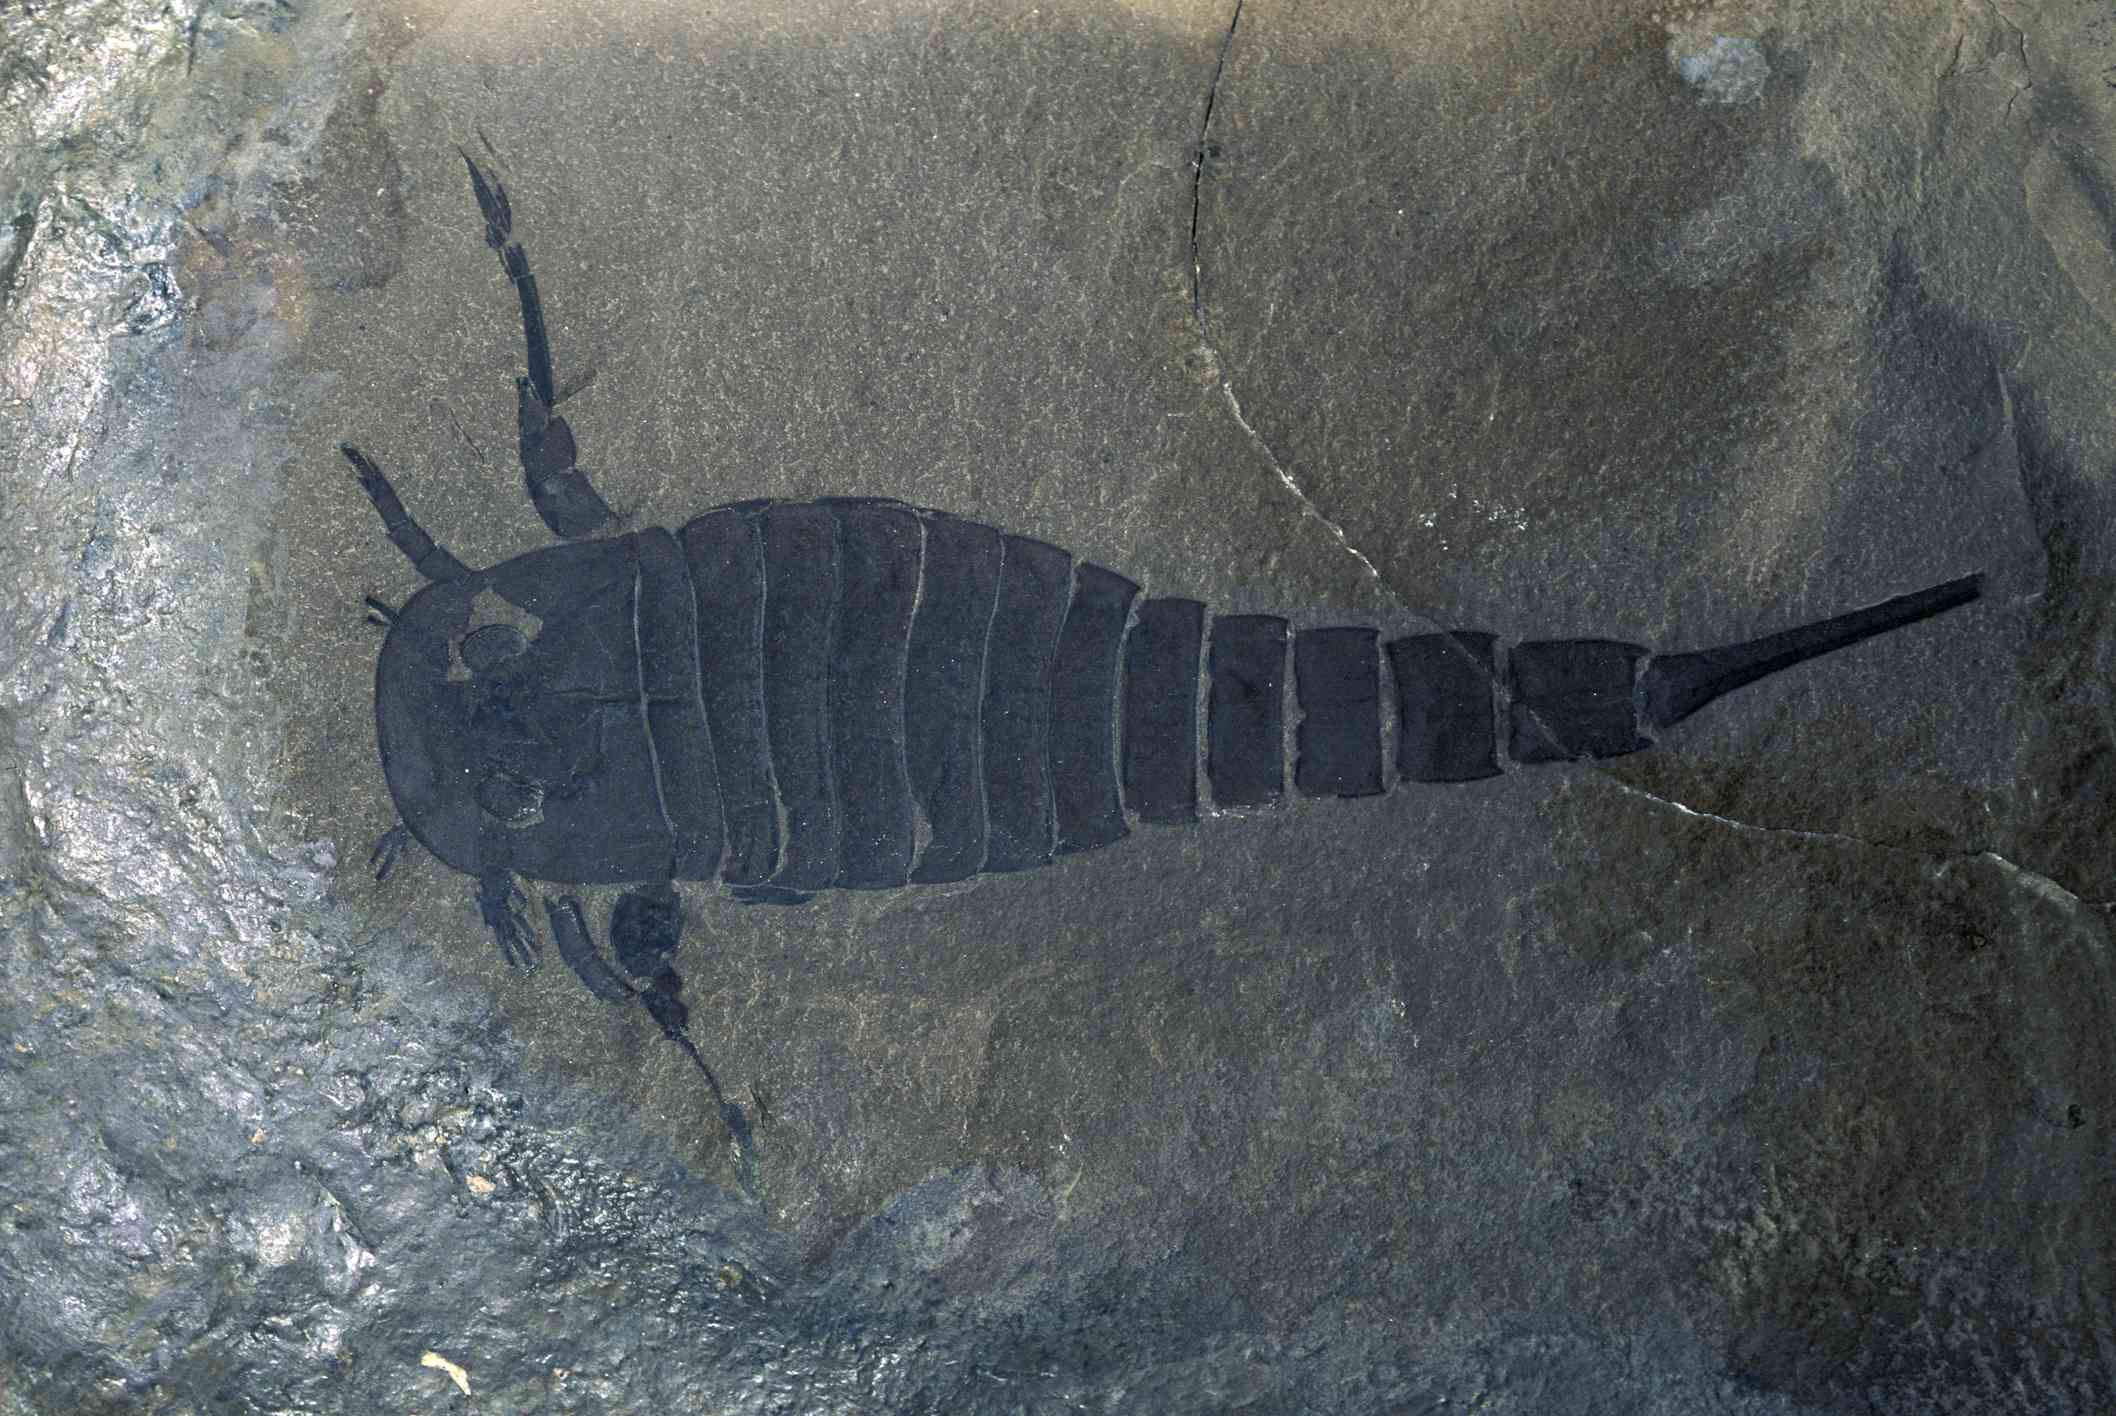 A fossil of a Eurypterid, or sea scorpion, from the Silurian Period.